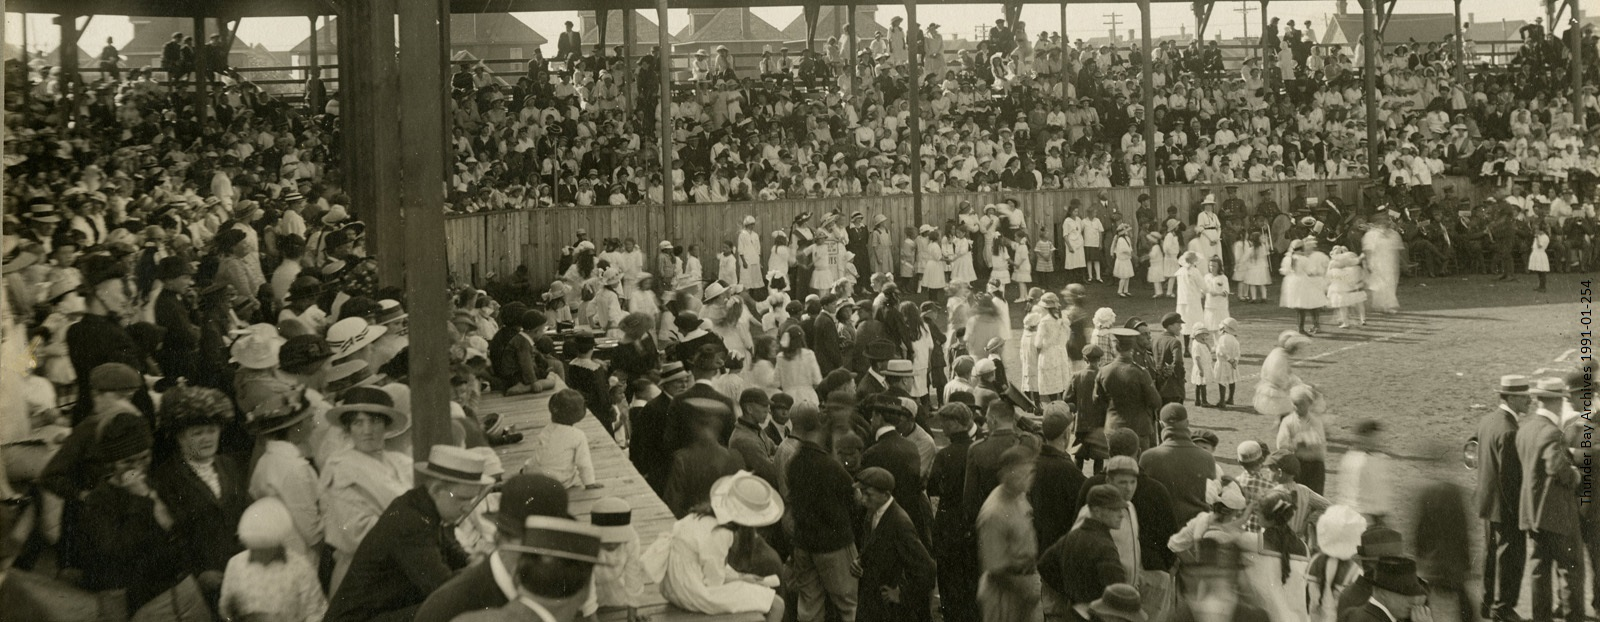 black and white photo of 1910s crowd in stadium stands